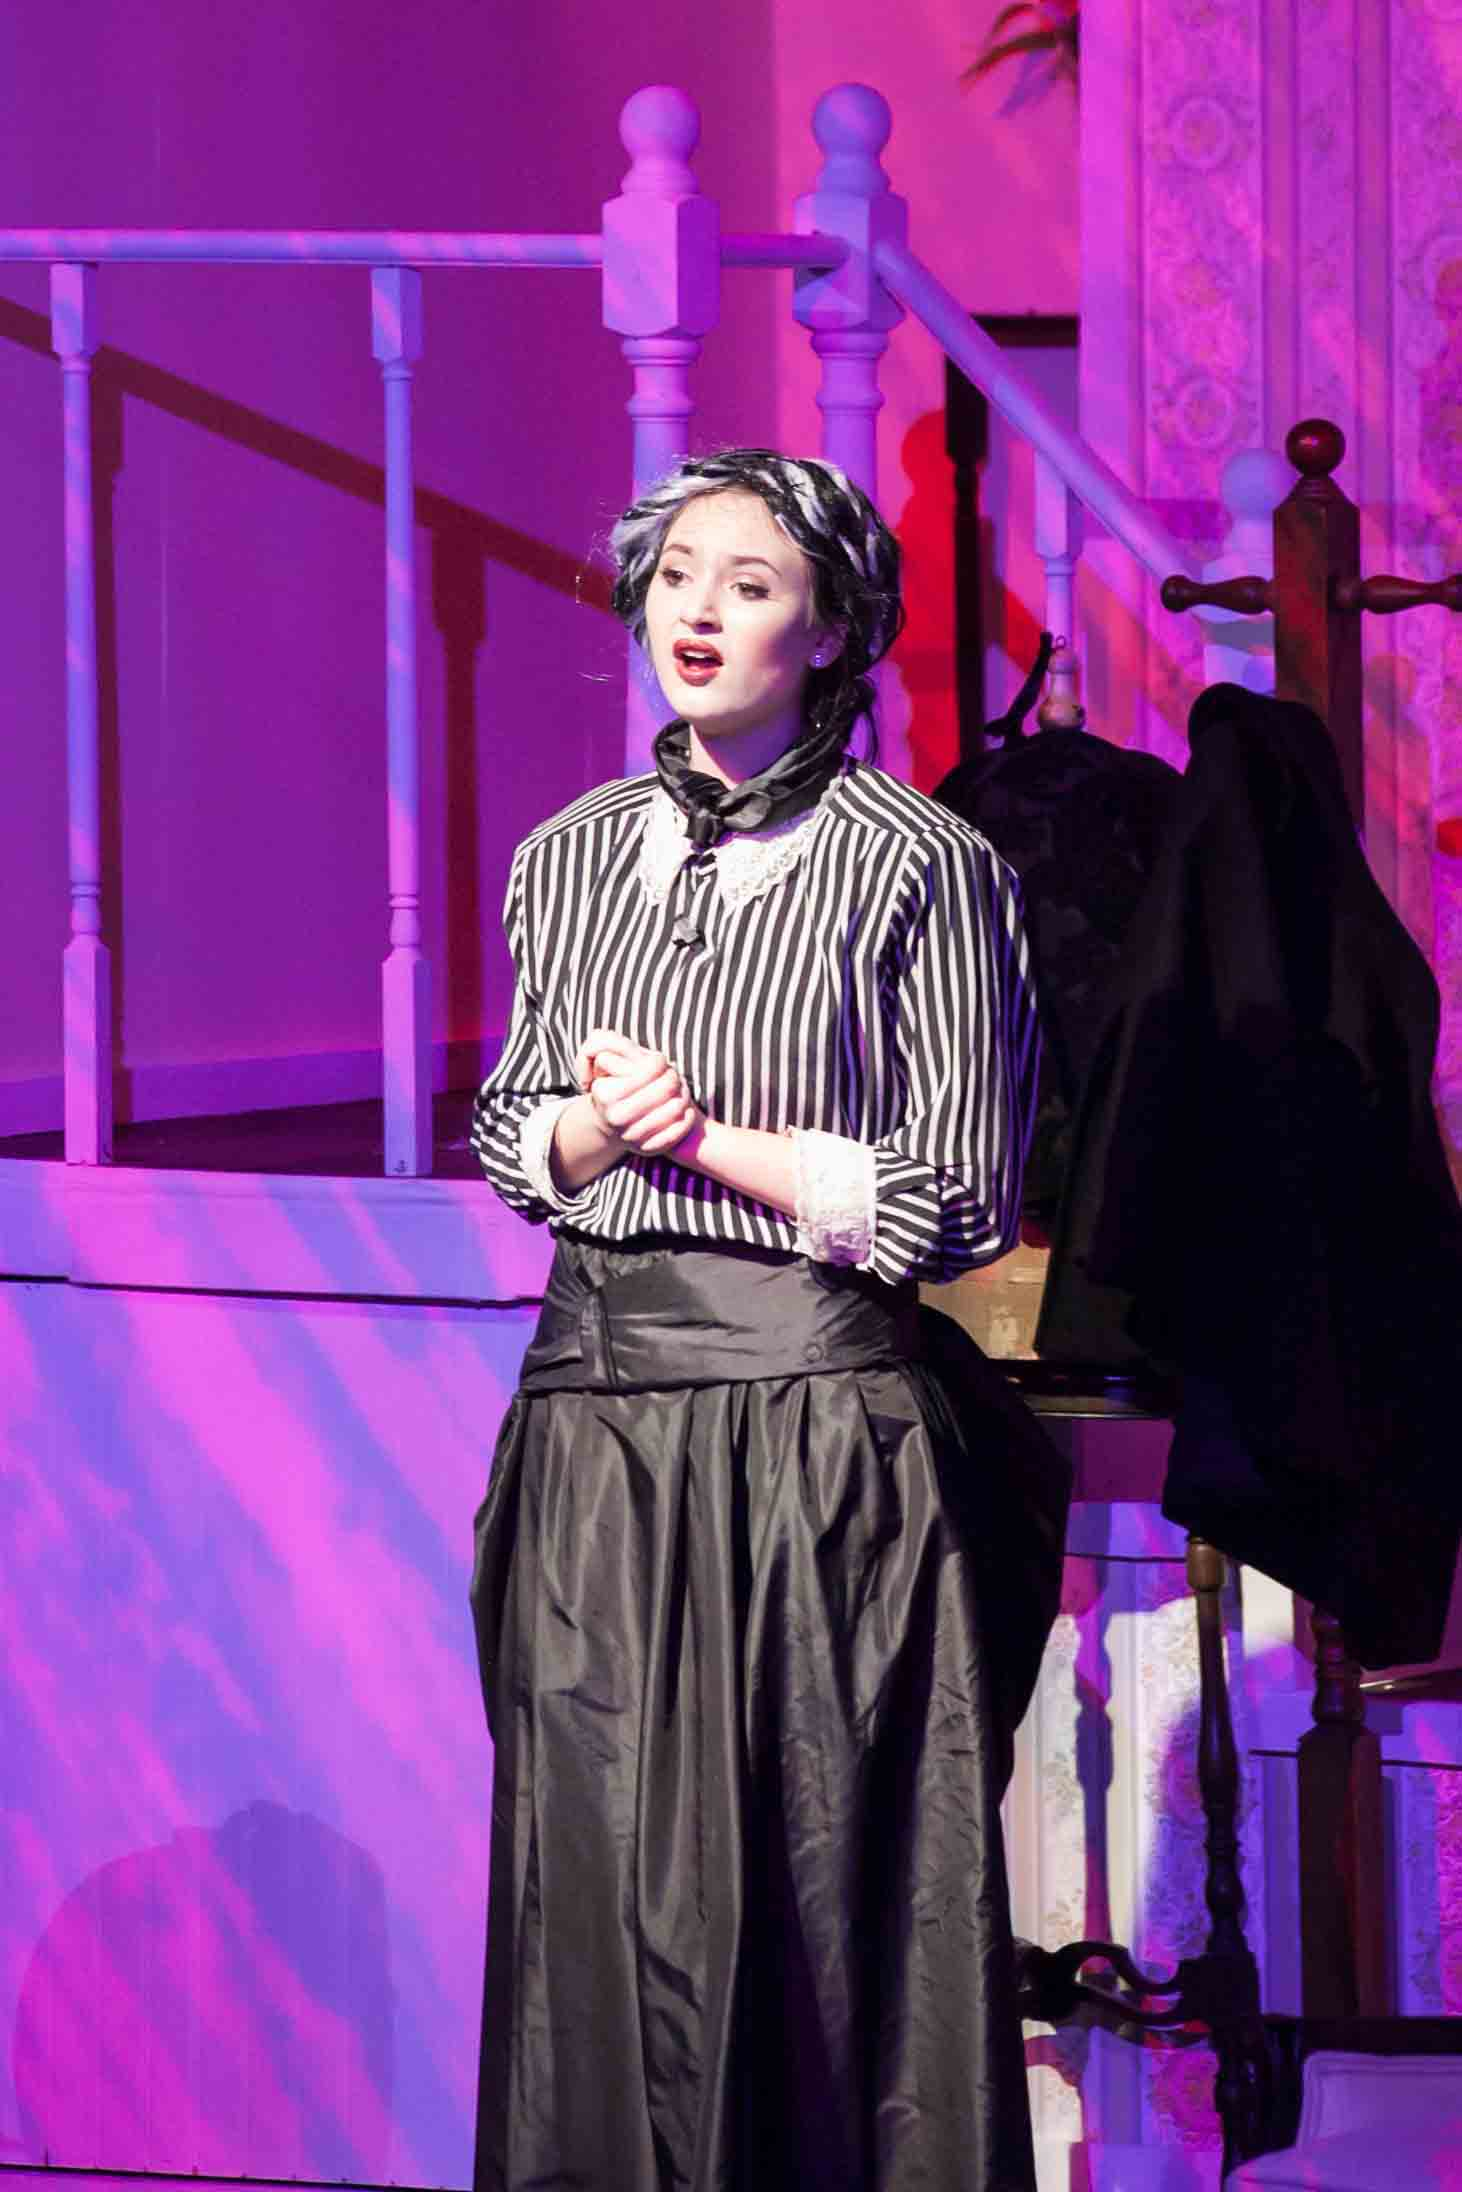 2-4-16 Mary Poppins Proper Cast 0309.jpg